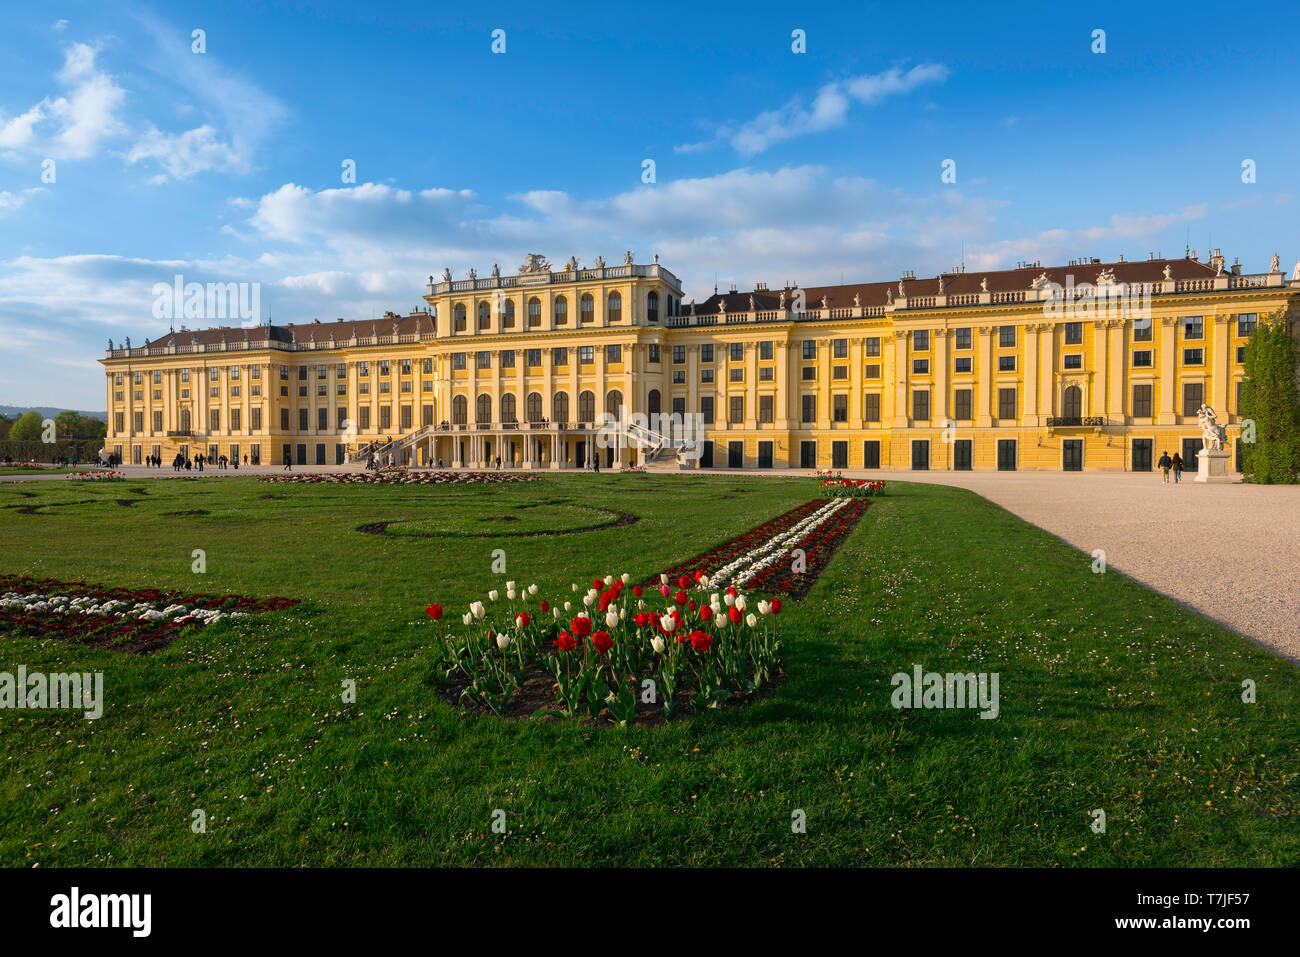 Schonbrunn Palace, view of the parterre garden and baroque exterior of the south side of the Schloss Schönbrunn in Vienna, Austria. Stock Photo